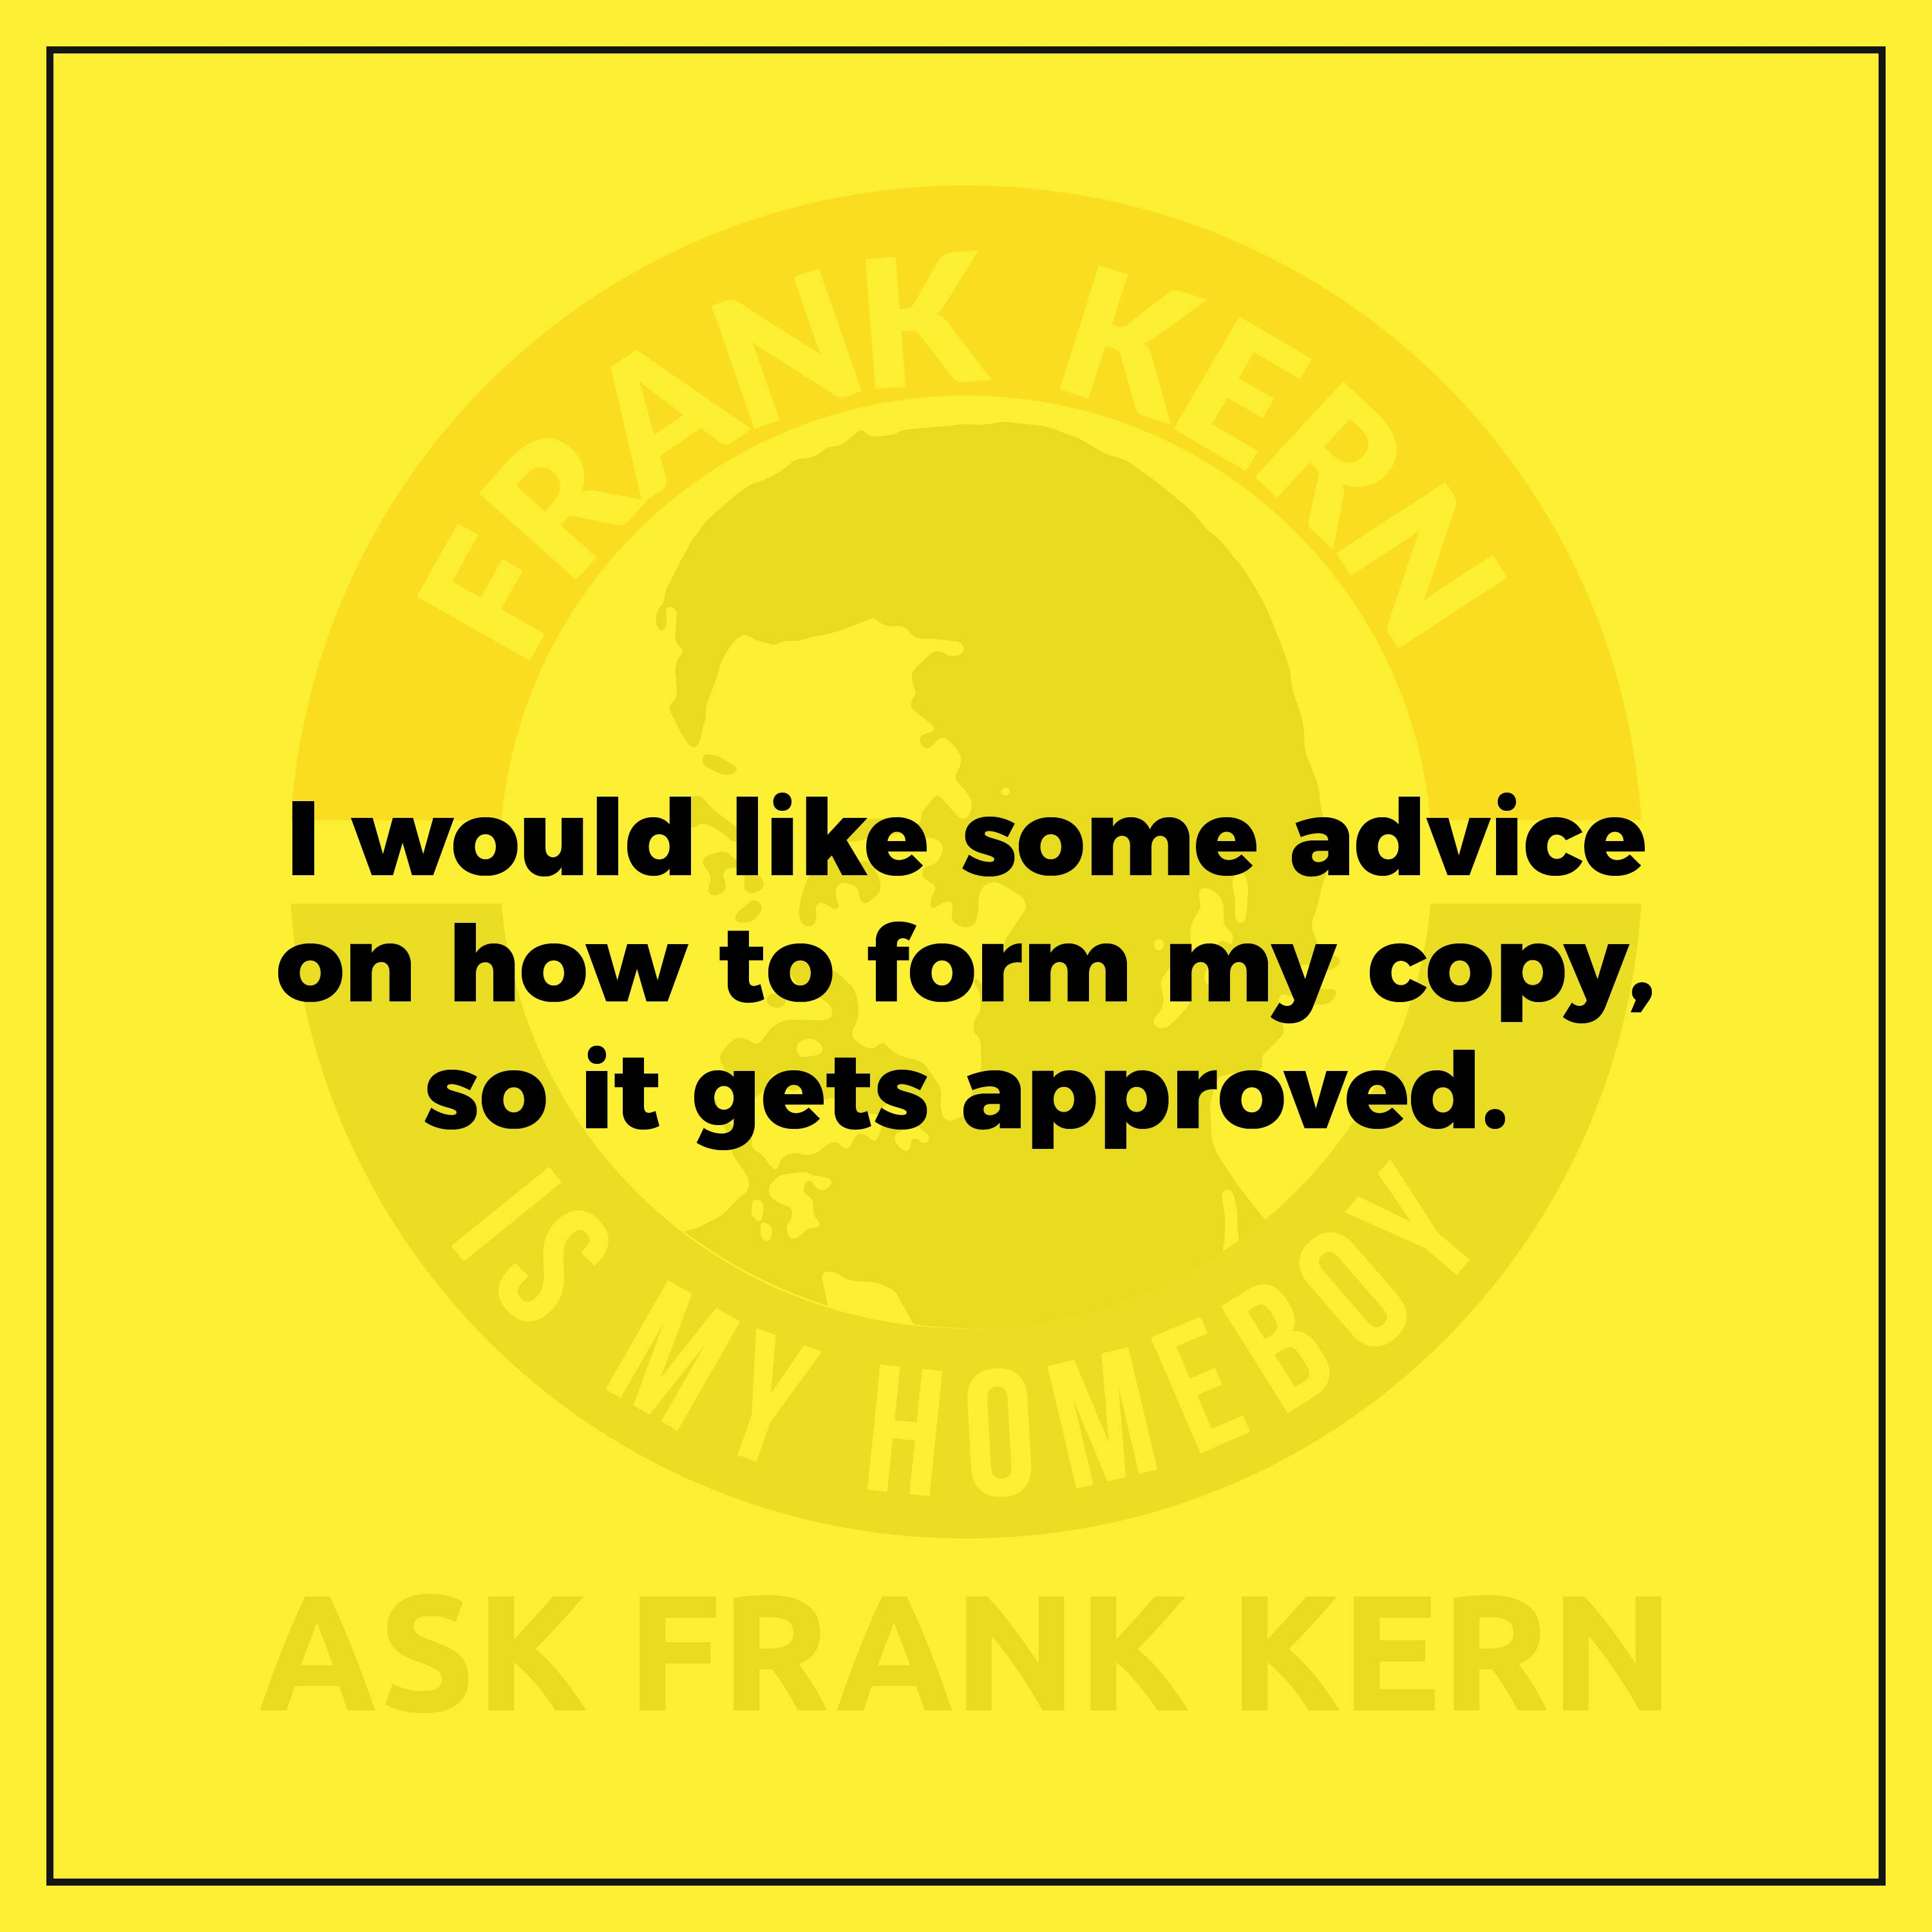 I would like some advice on how to form my copy, so it gets approved.